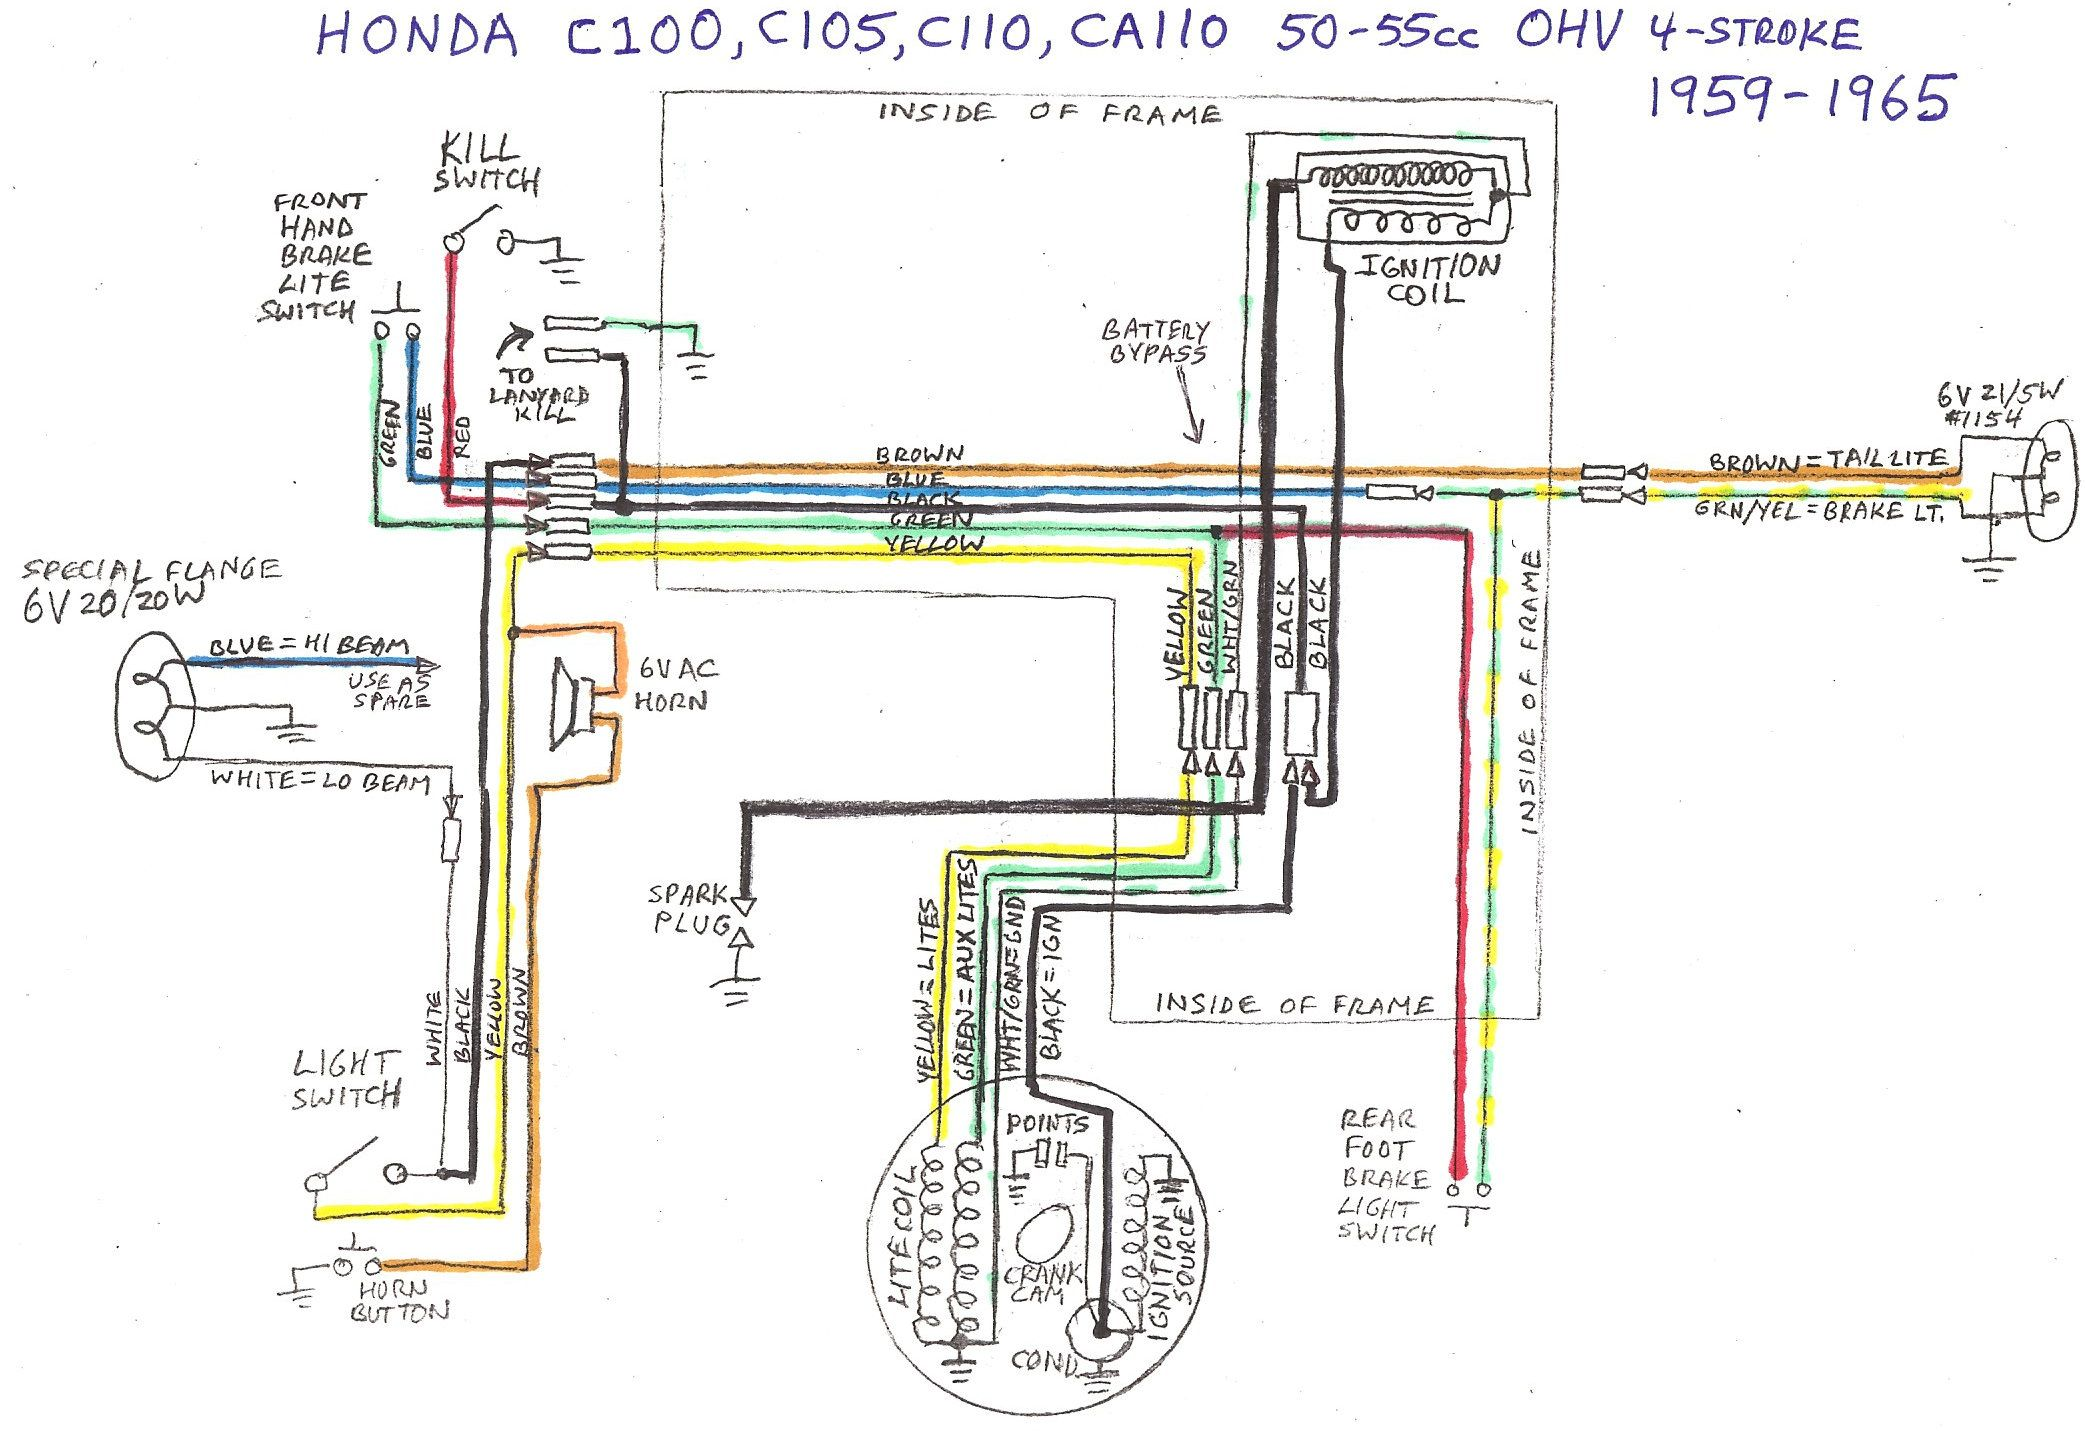 Pin By Michael P On Xe Hơi Va Xe Gắn May Motorcycle Wiring Honda Honda Motorcycles